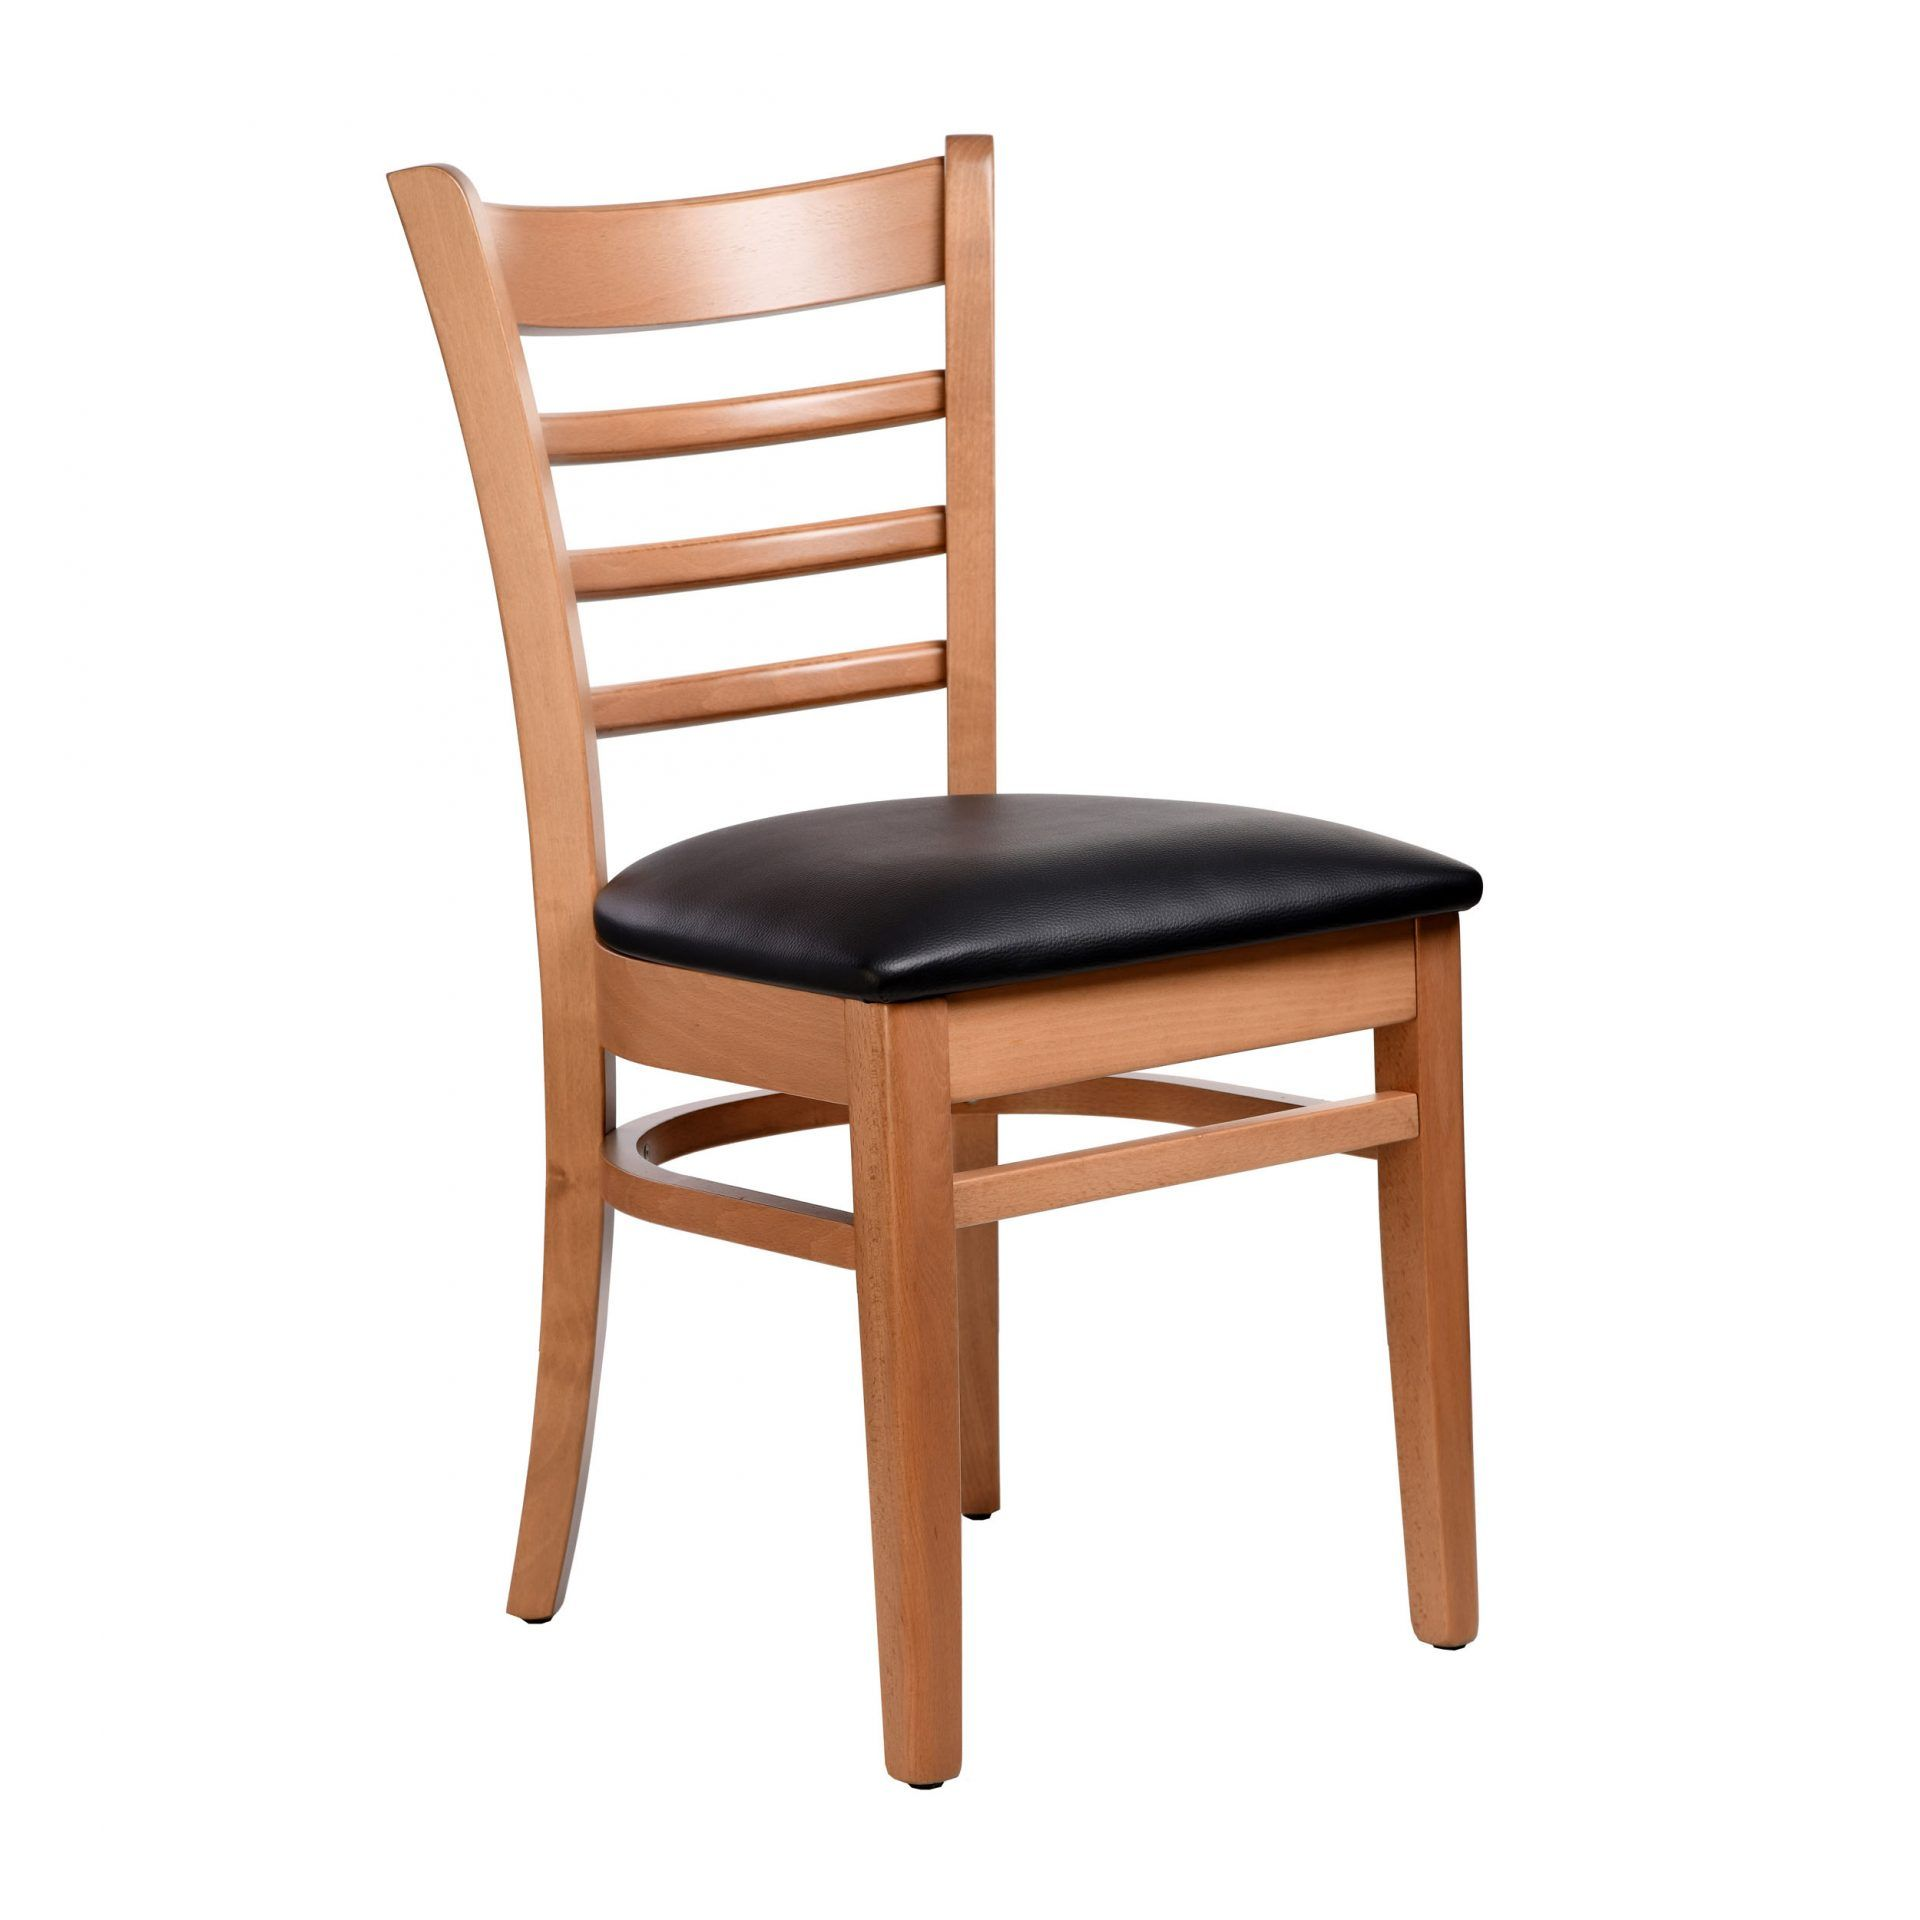 Florence Chair - Natural - Vinyl Seat (Choc) - Made in Europe